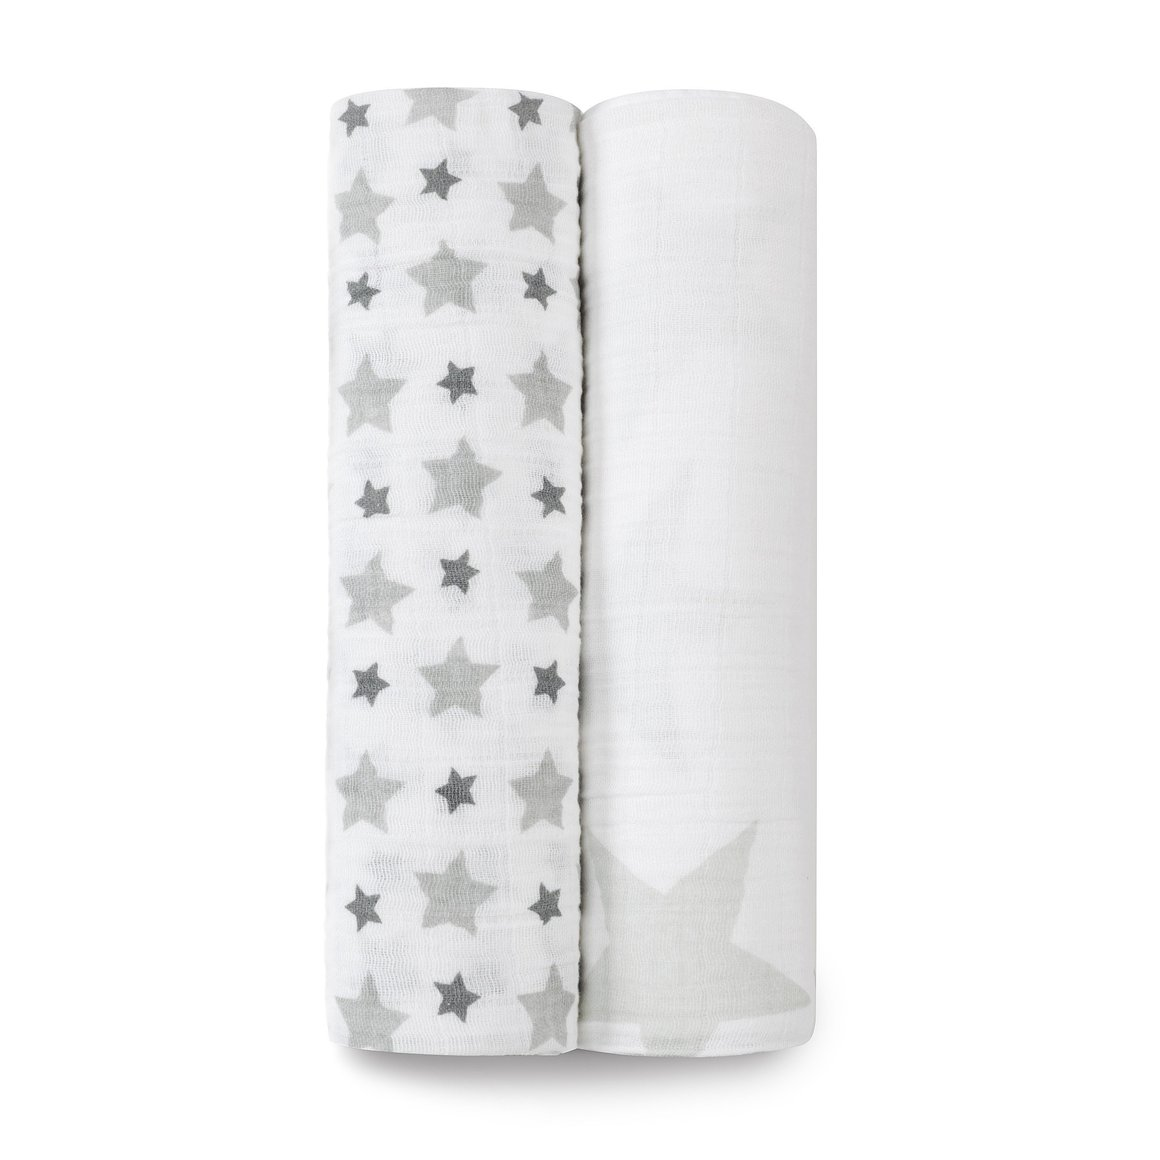 Twinkle Classic Swaddles (2 Pack)